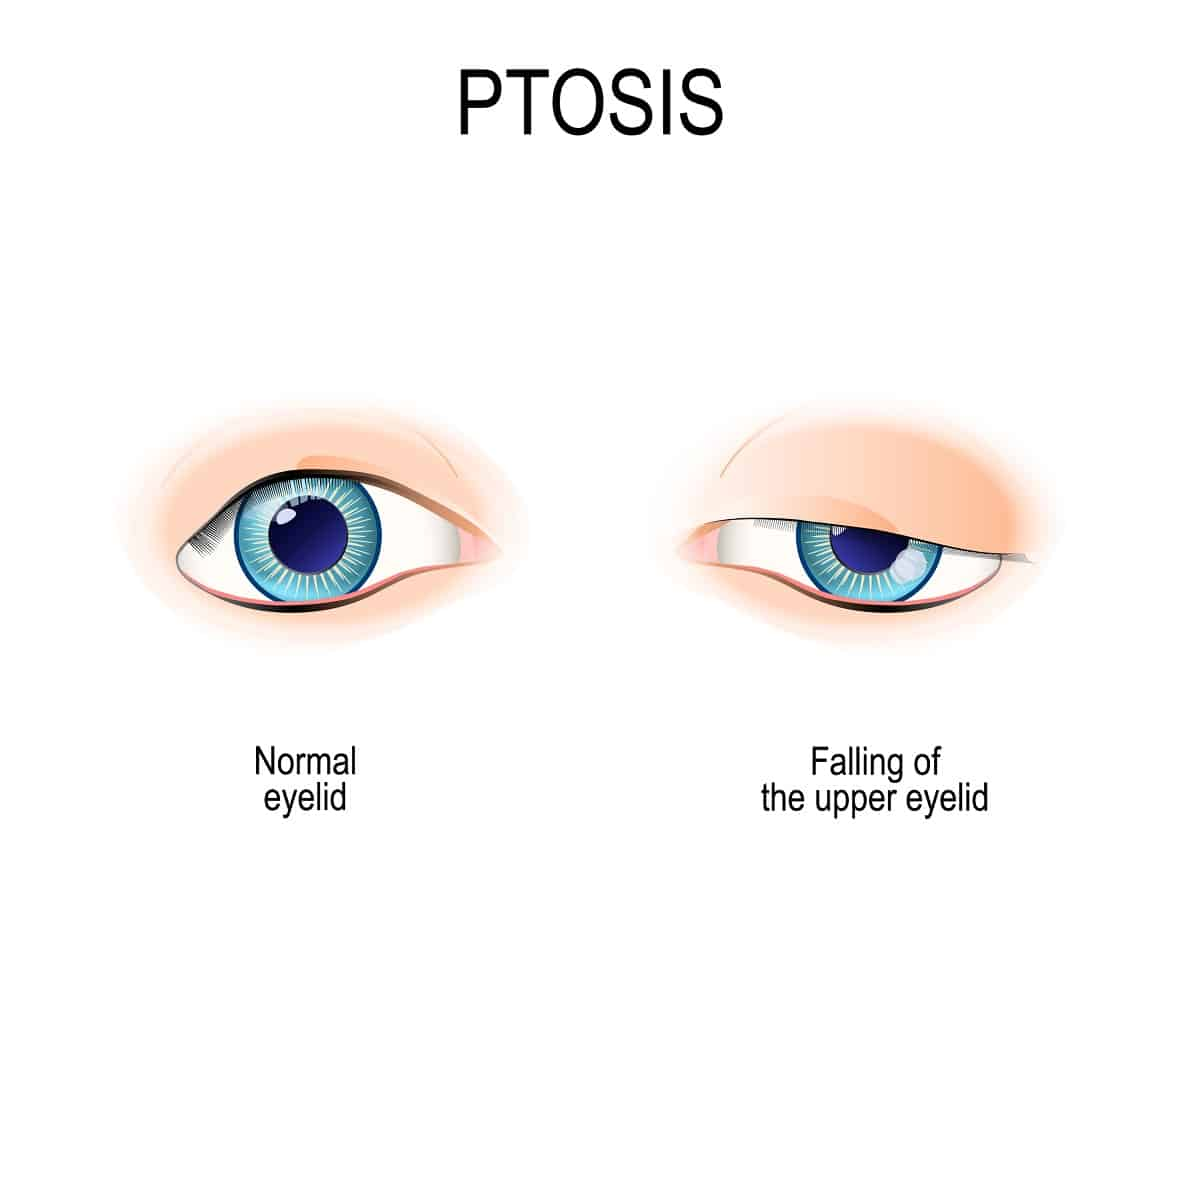 Ptosis is a drooping of the upper eyelid